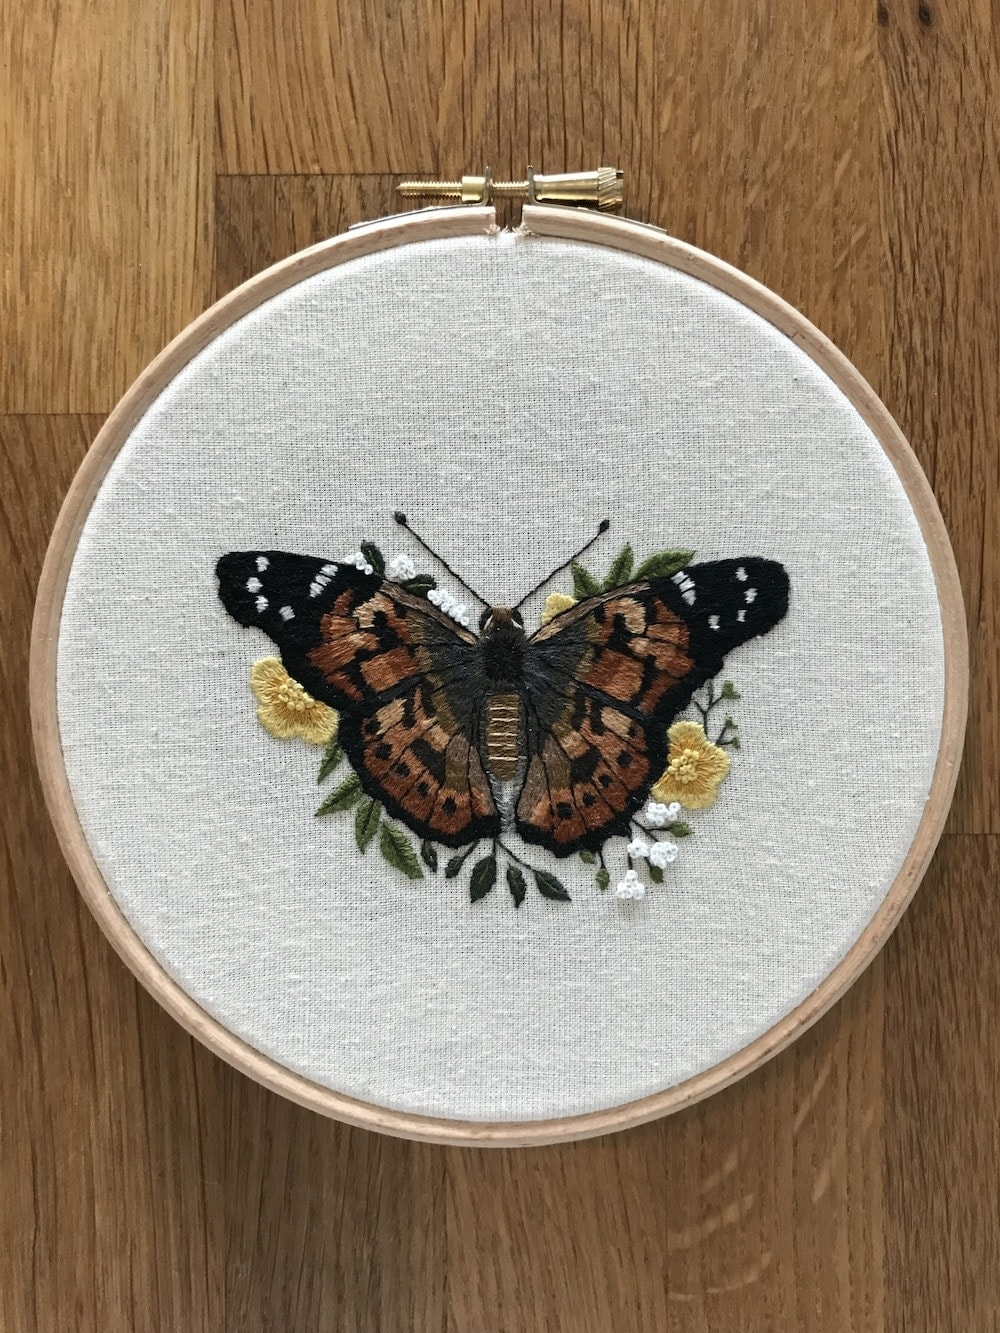 Painted Lady Butterfly needle painting embroidery pattern by Emillie Ferris.jpg